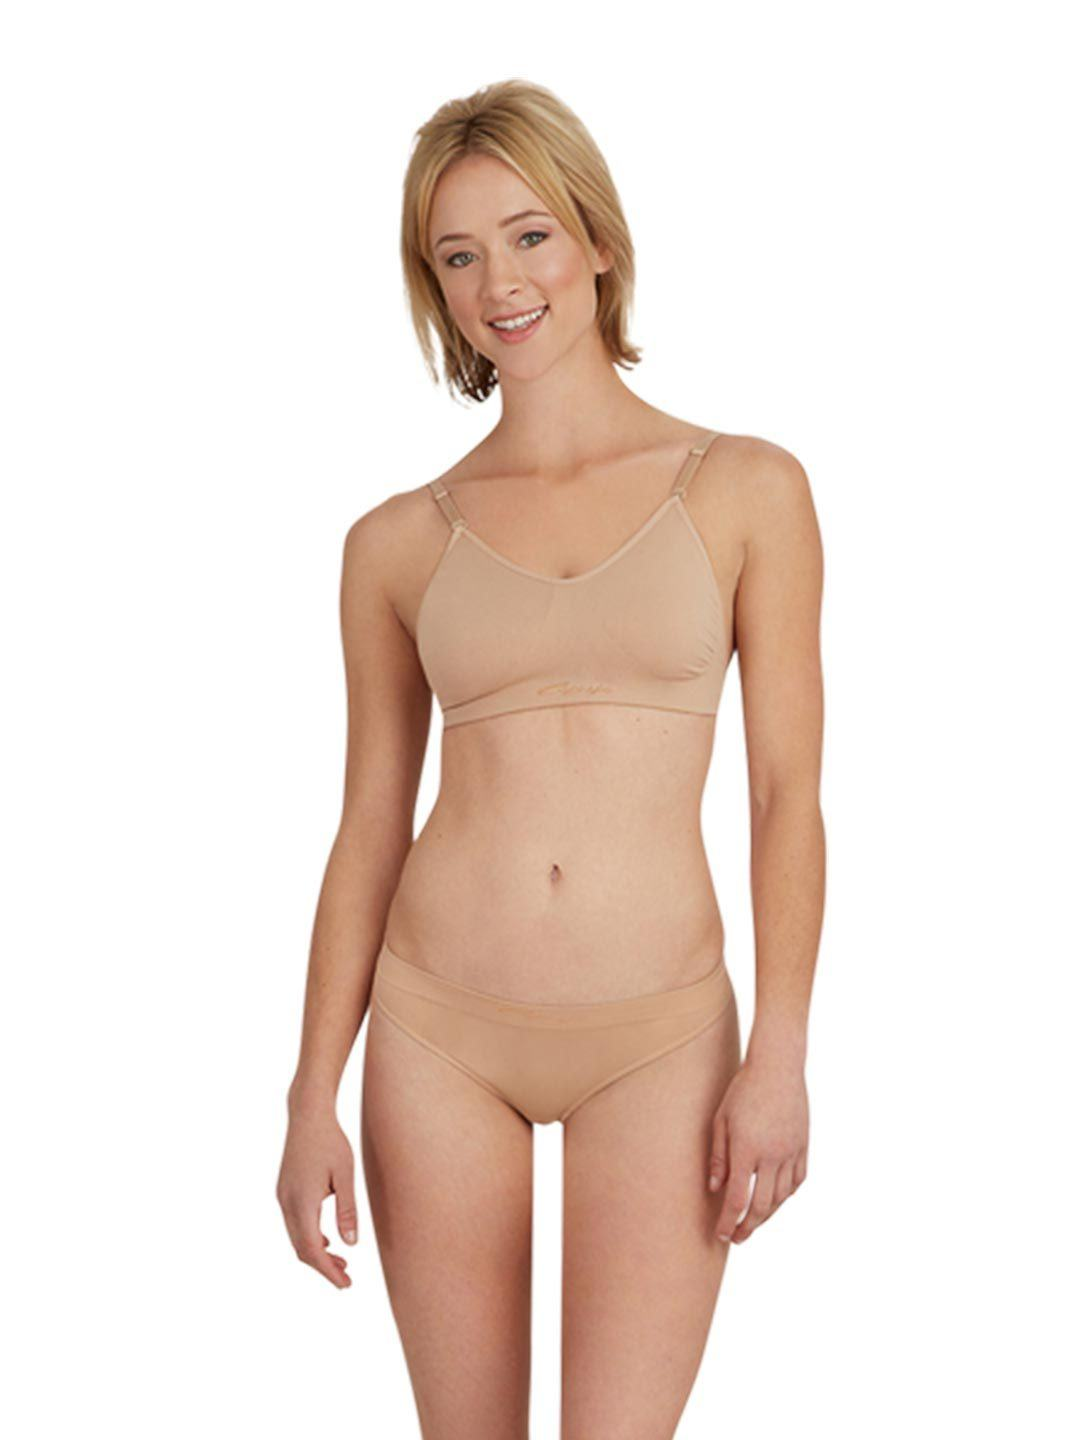 3683 Nude Capezio overs and unders clear back bra dance underwear